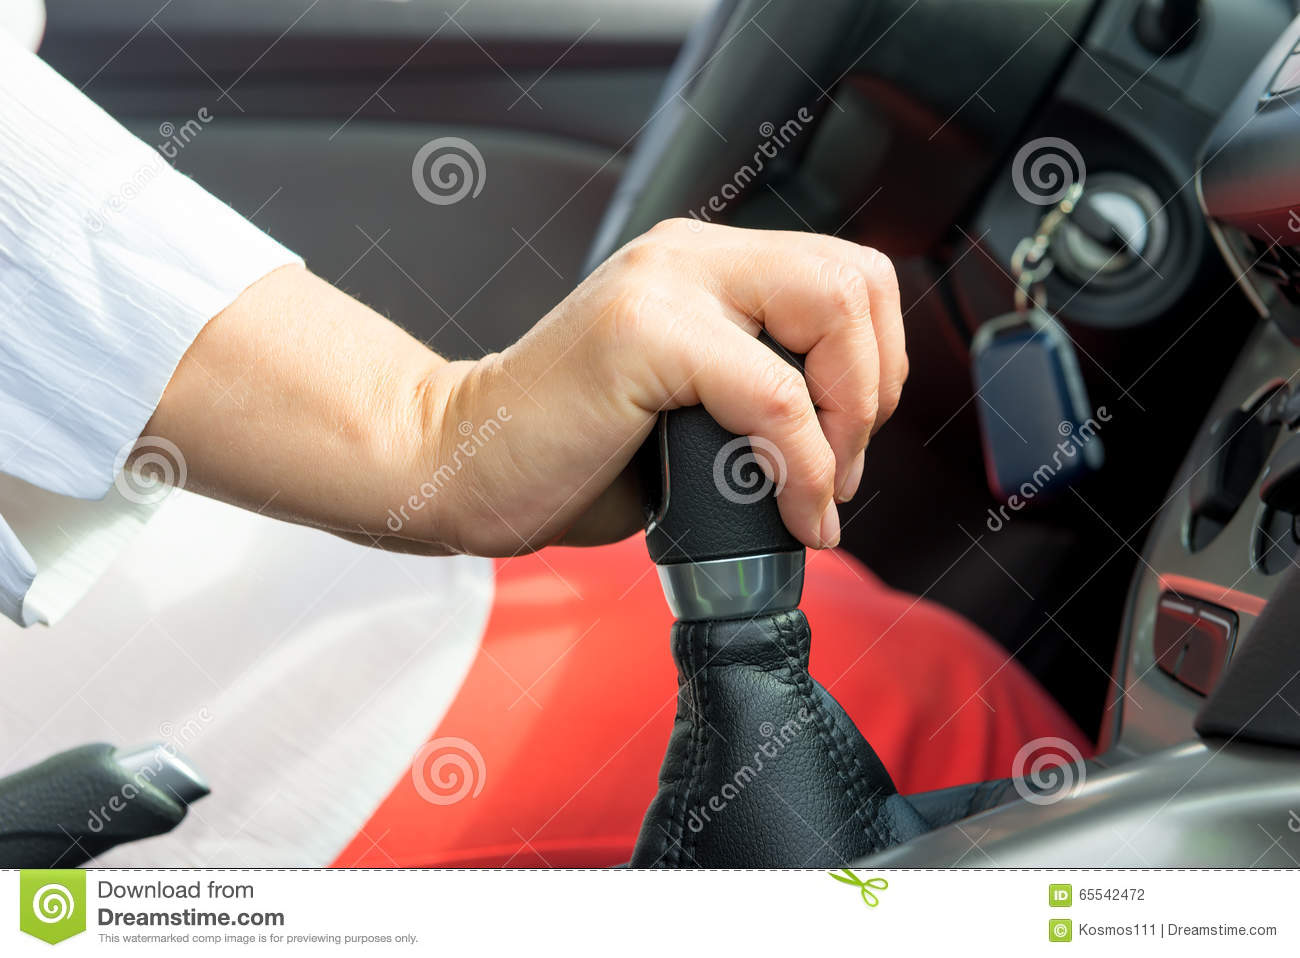 Woman s hand holding a the shift lever in a car